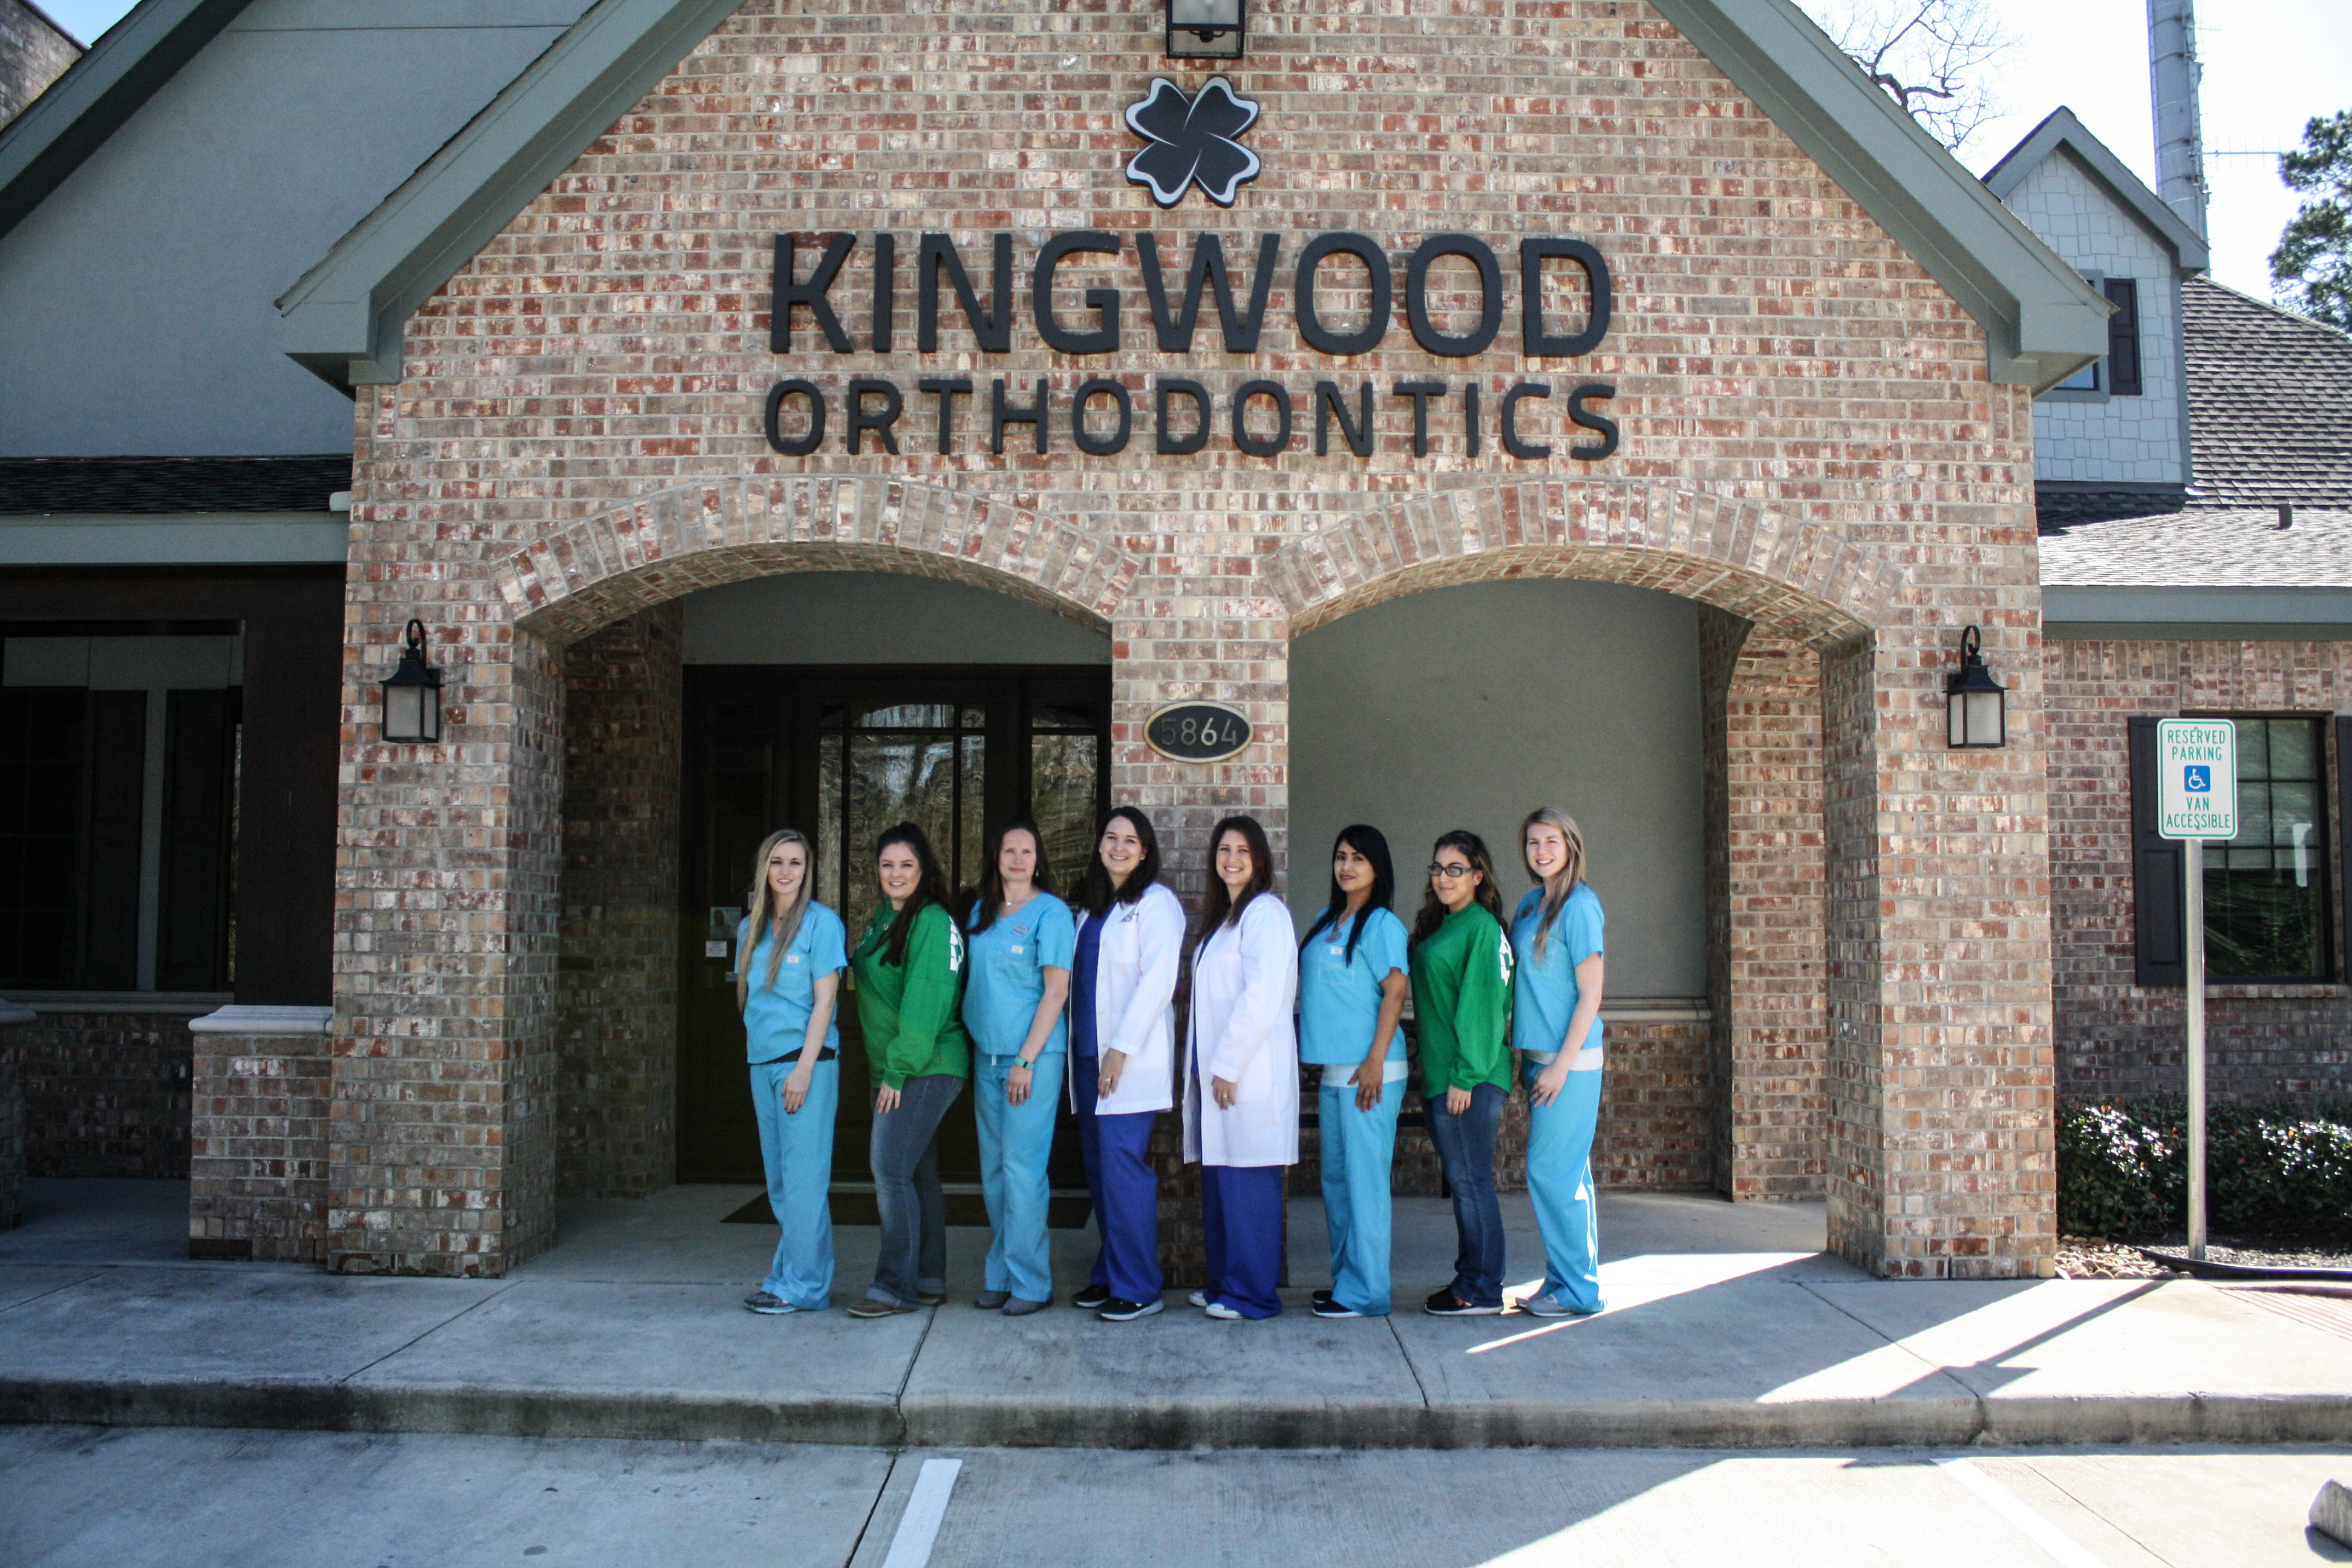 The Kingwood Orthodontics Team